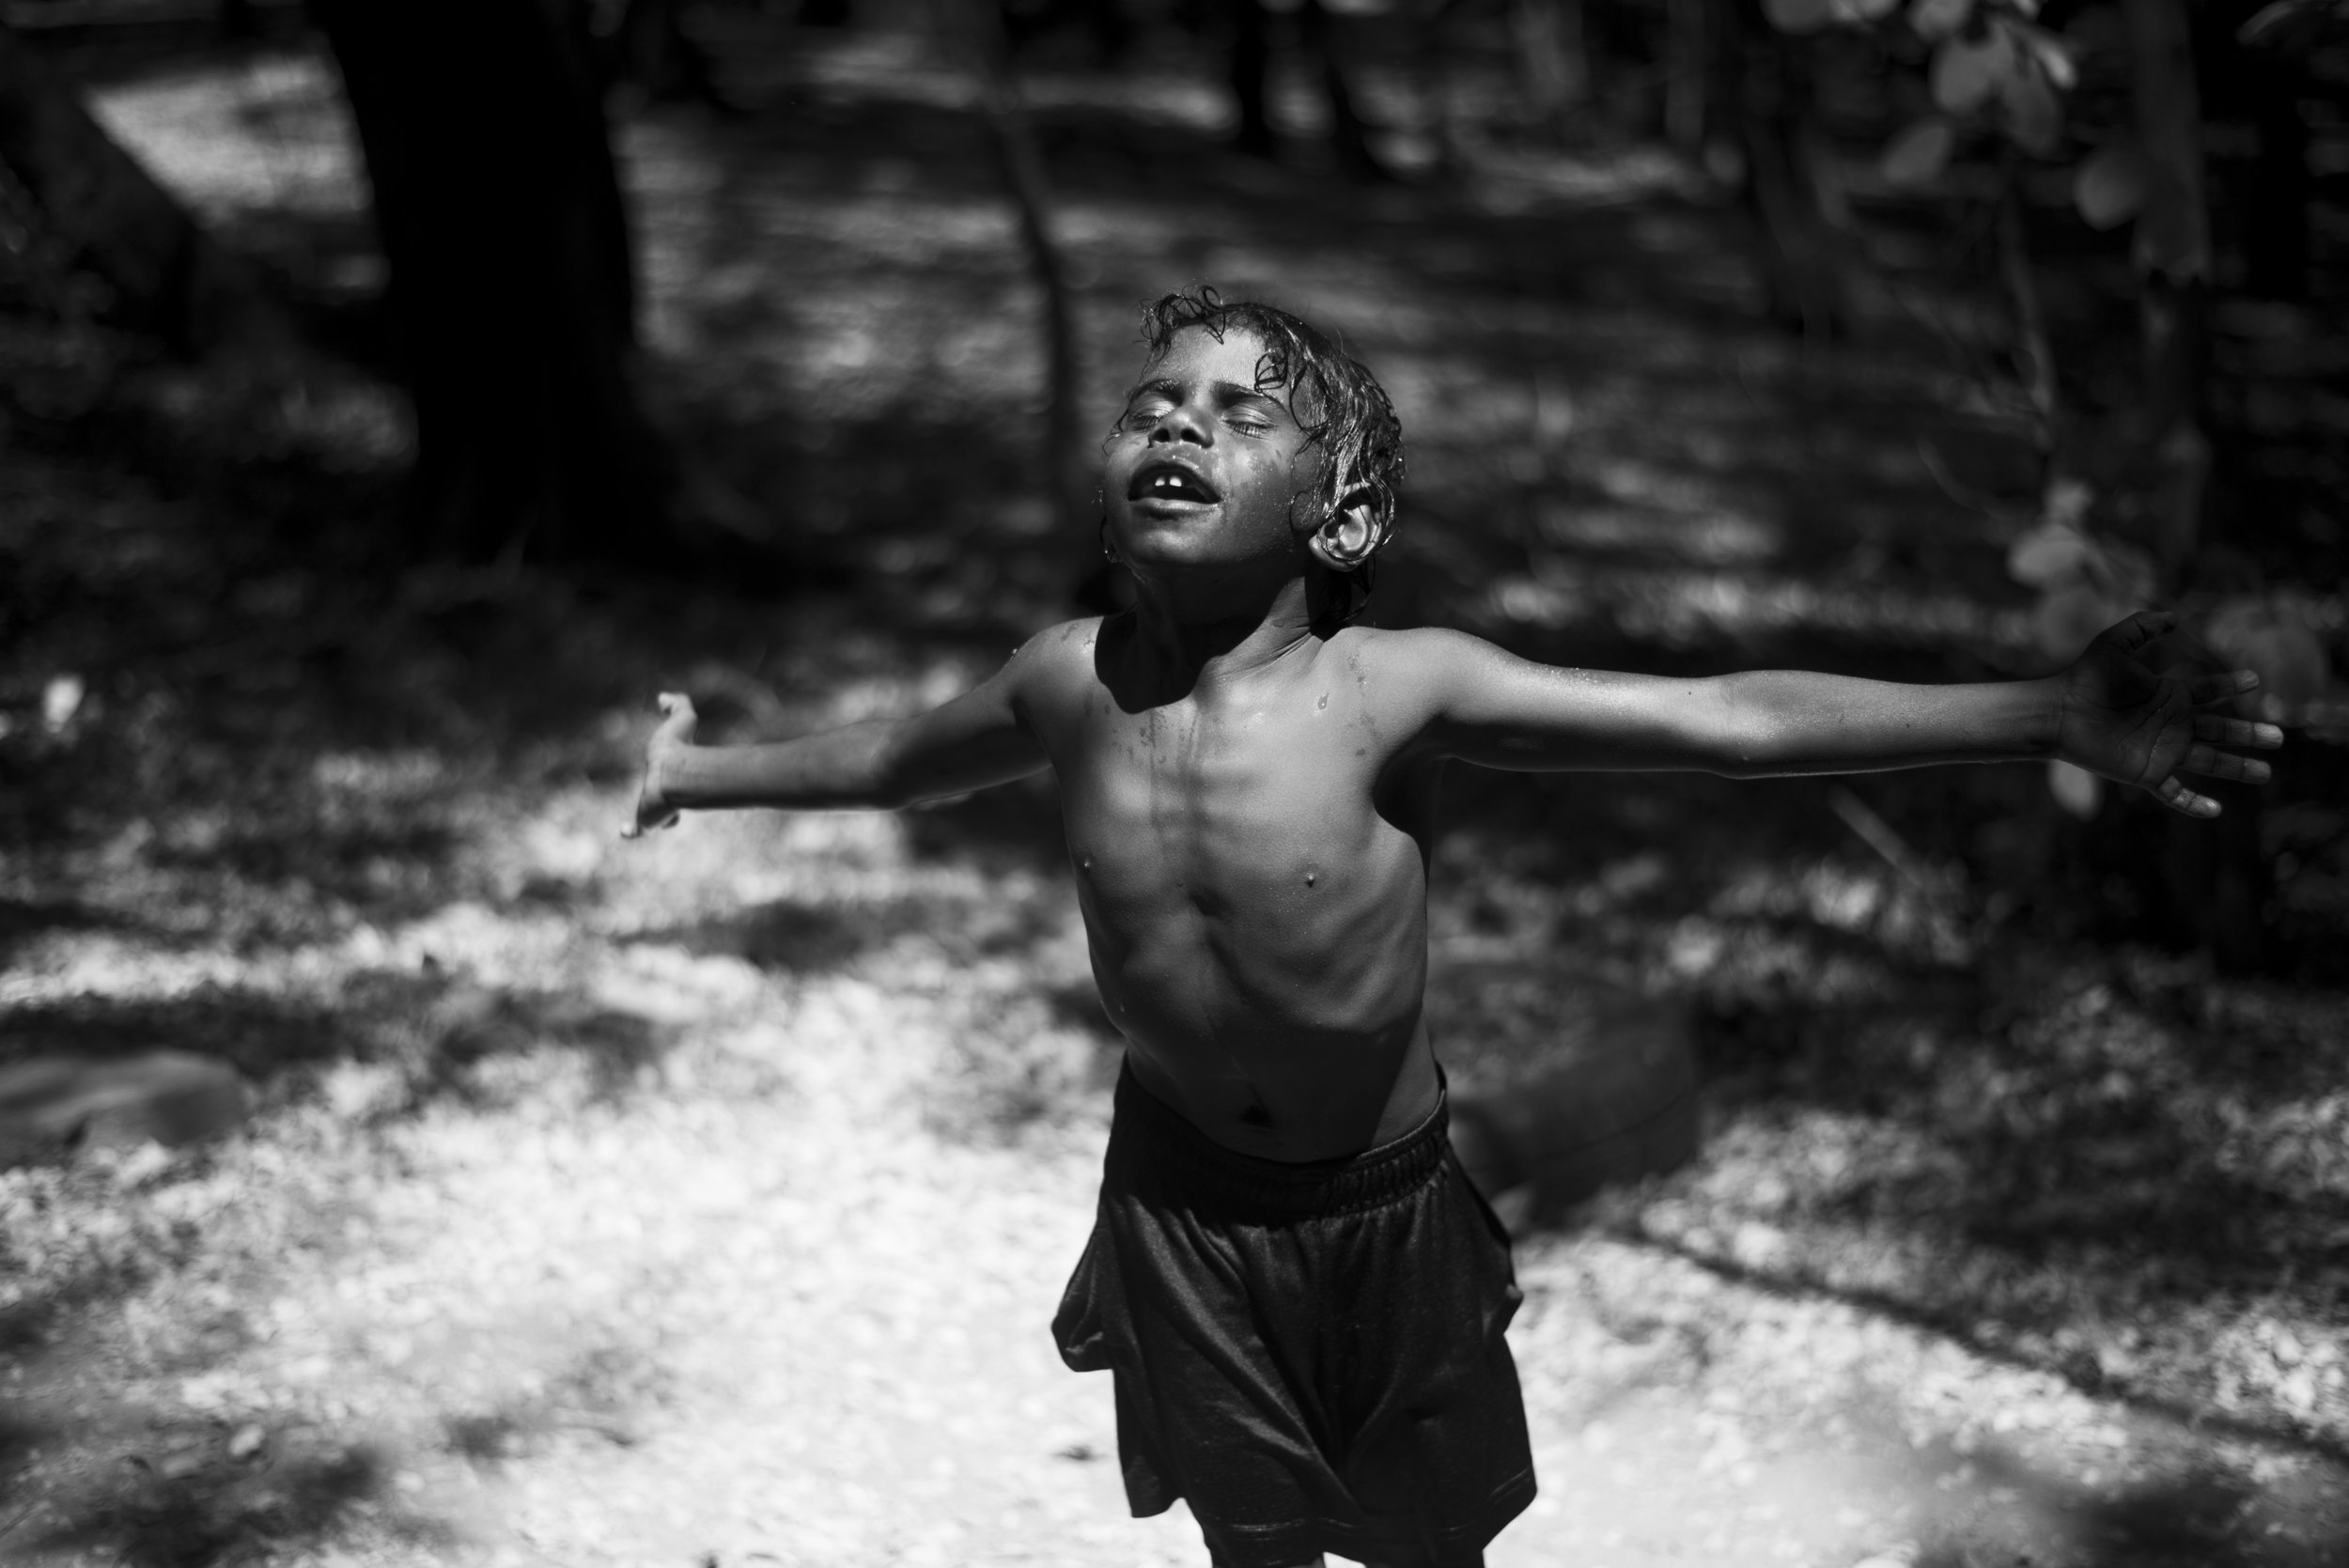 Early Childhood program. Gulf country, Queensland. 2017.